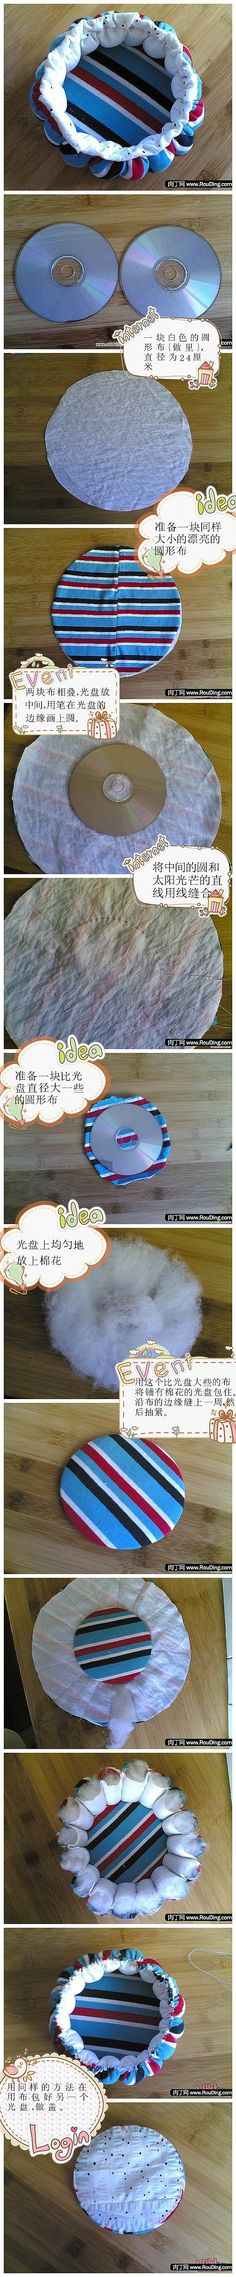 A round fabric basket. R: Different language but pictures tell all